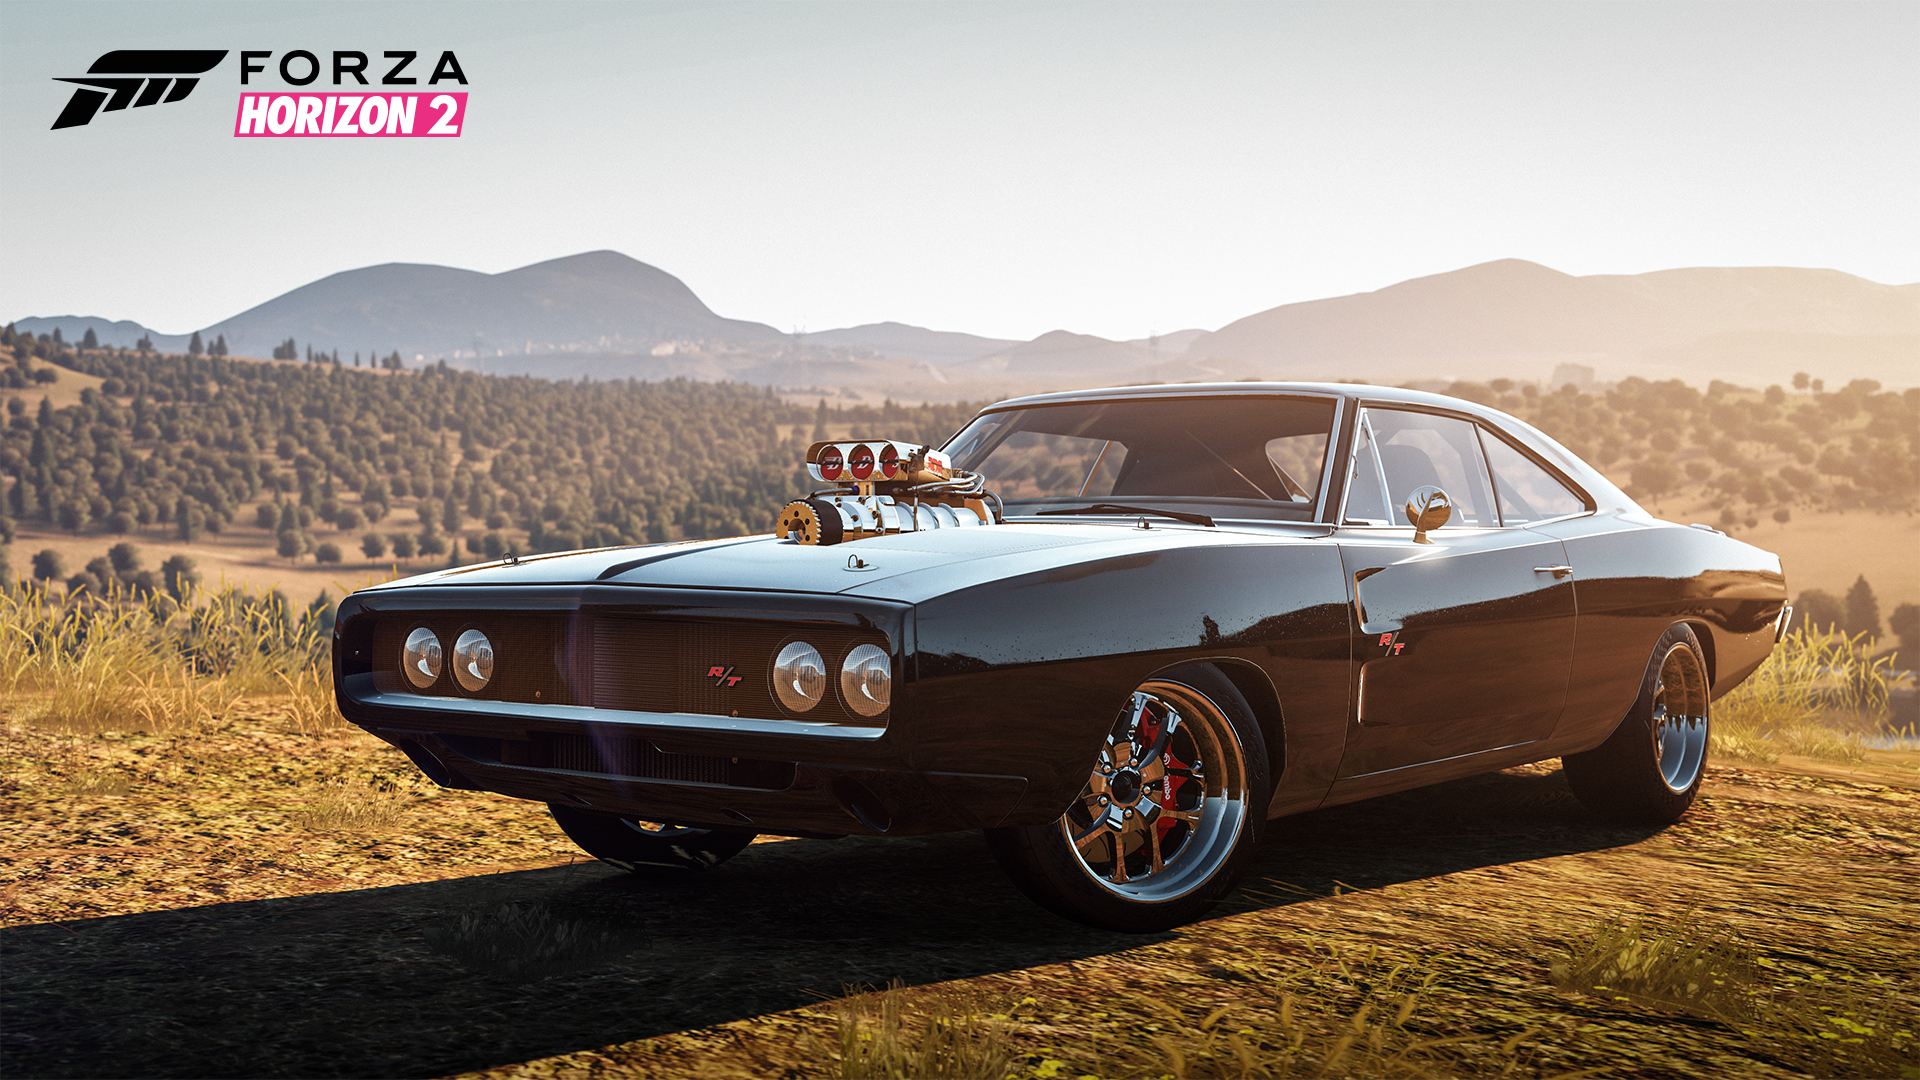 dodge charger r t fast furious edition 1970 forza. Black Bedroom Furniture Sets. Home Design Ideas